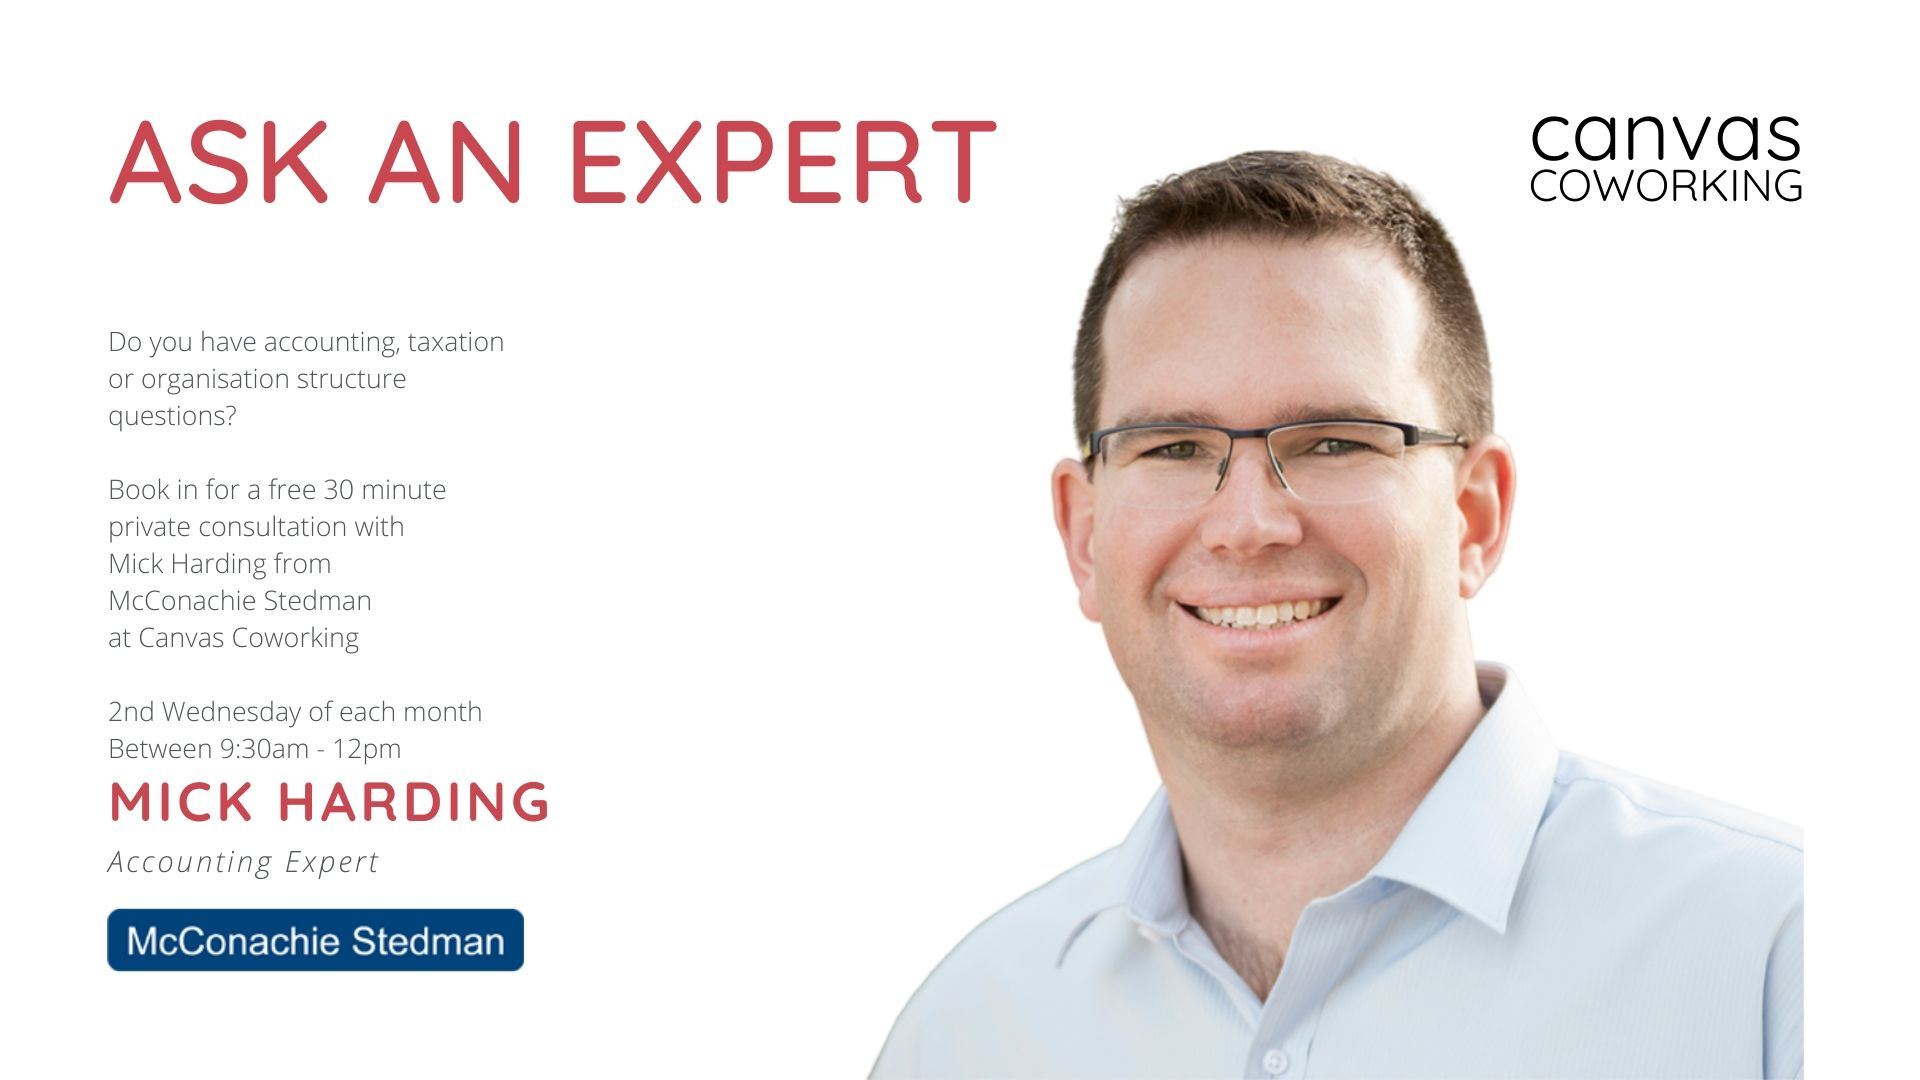 Ask An Accounting Expert - Mick Harding from McConachie Stedman - At Canvas Coworking on the 2nd Wednesday of each month